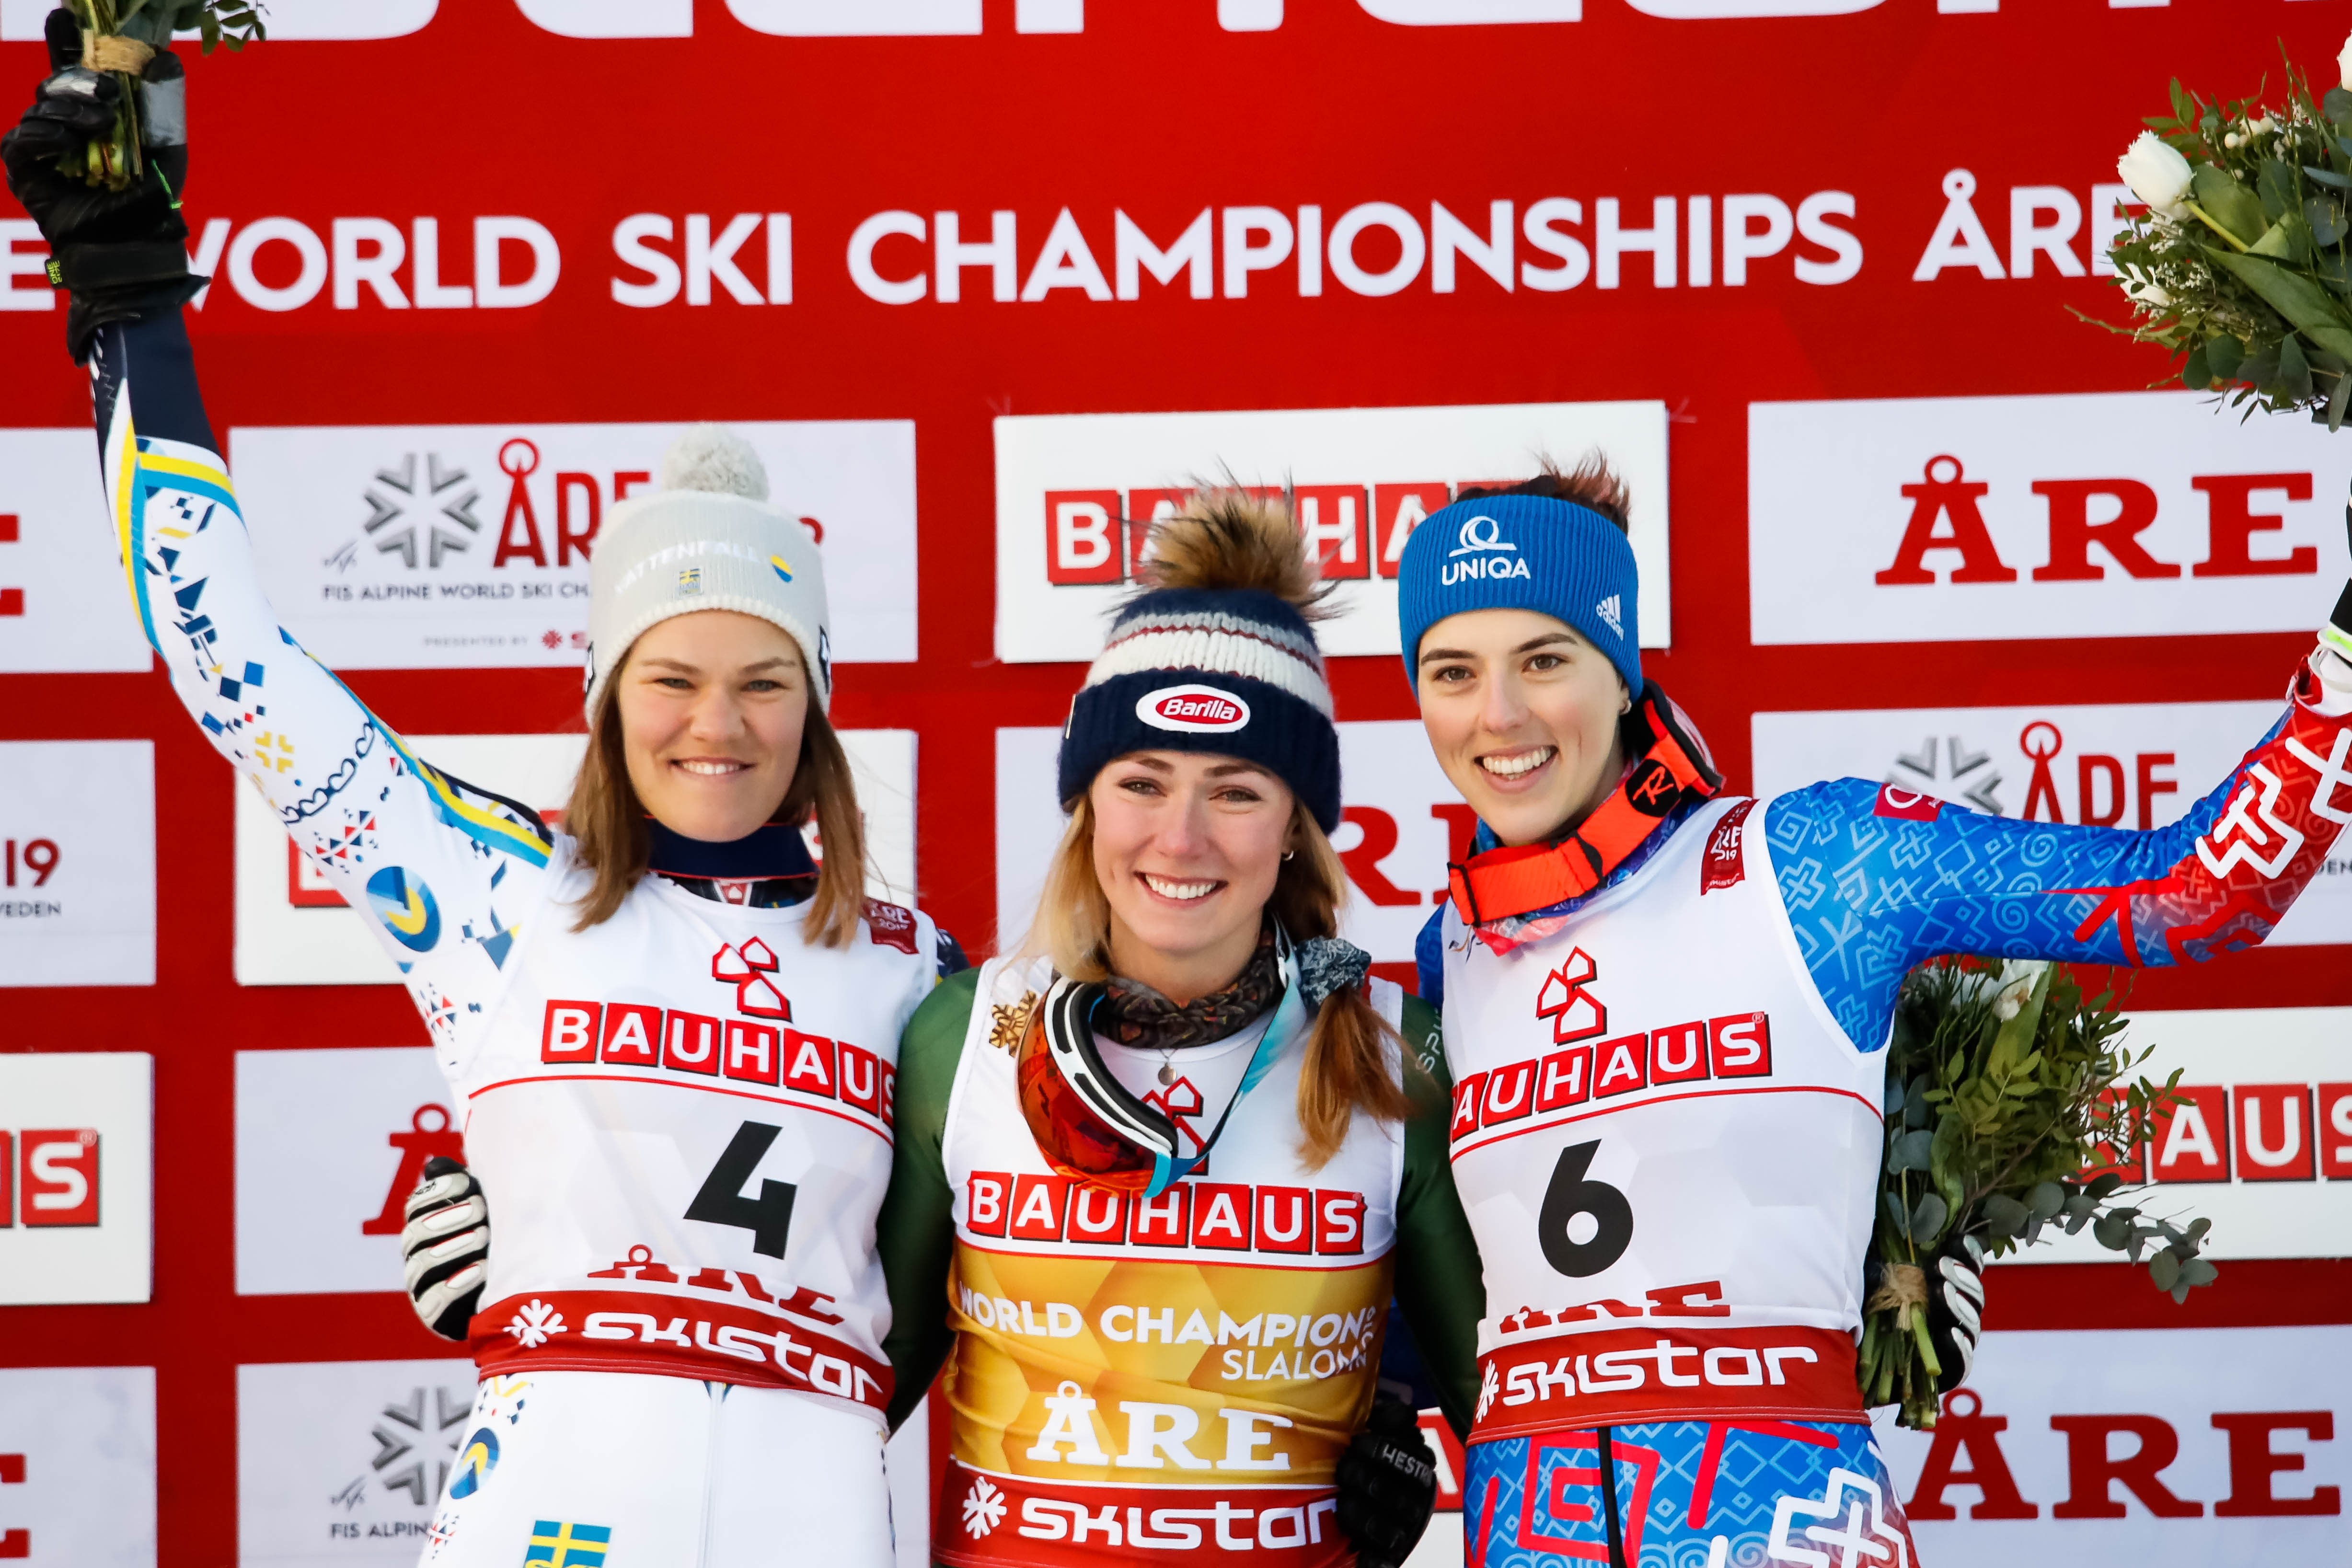 Anna Swenn Larsson of Sweden wins the silver medal, Mikaela Shiffrin of USA wins the gold medal, Petra Vlhova of Slovakia wins the bronze medal during the FIS World Ski Championships Women's Slalom on February 16, 2019 in Are Sweden.